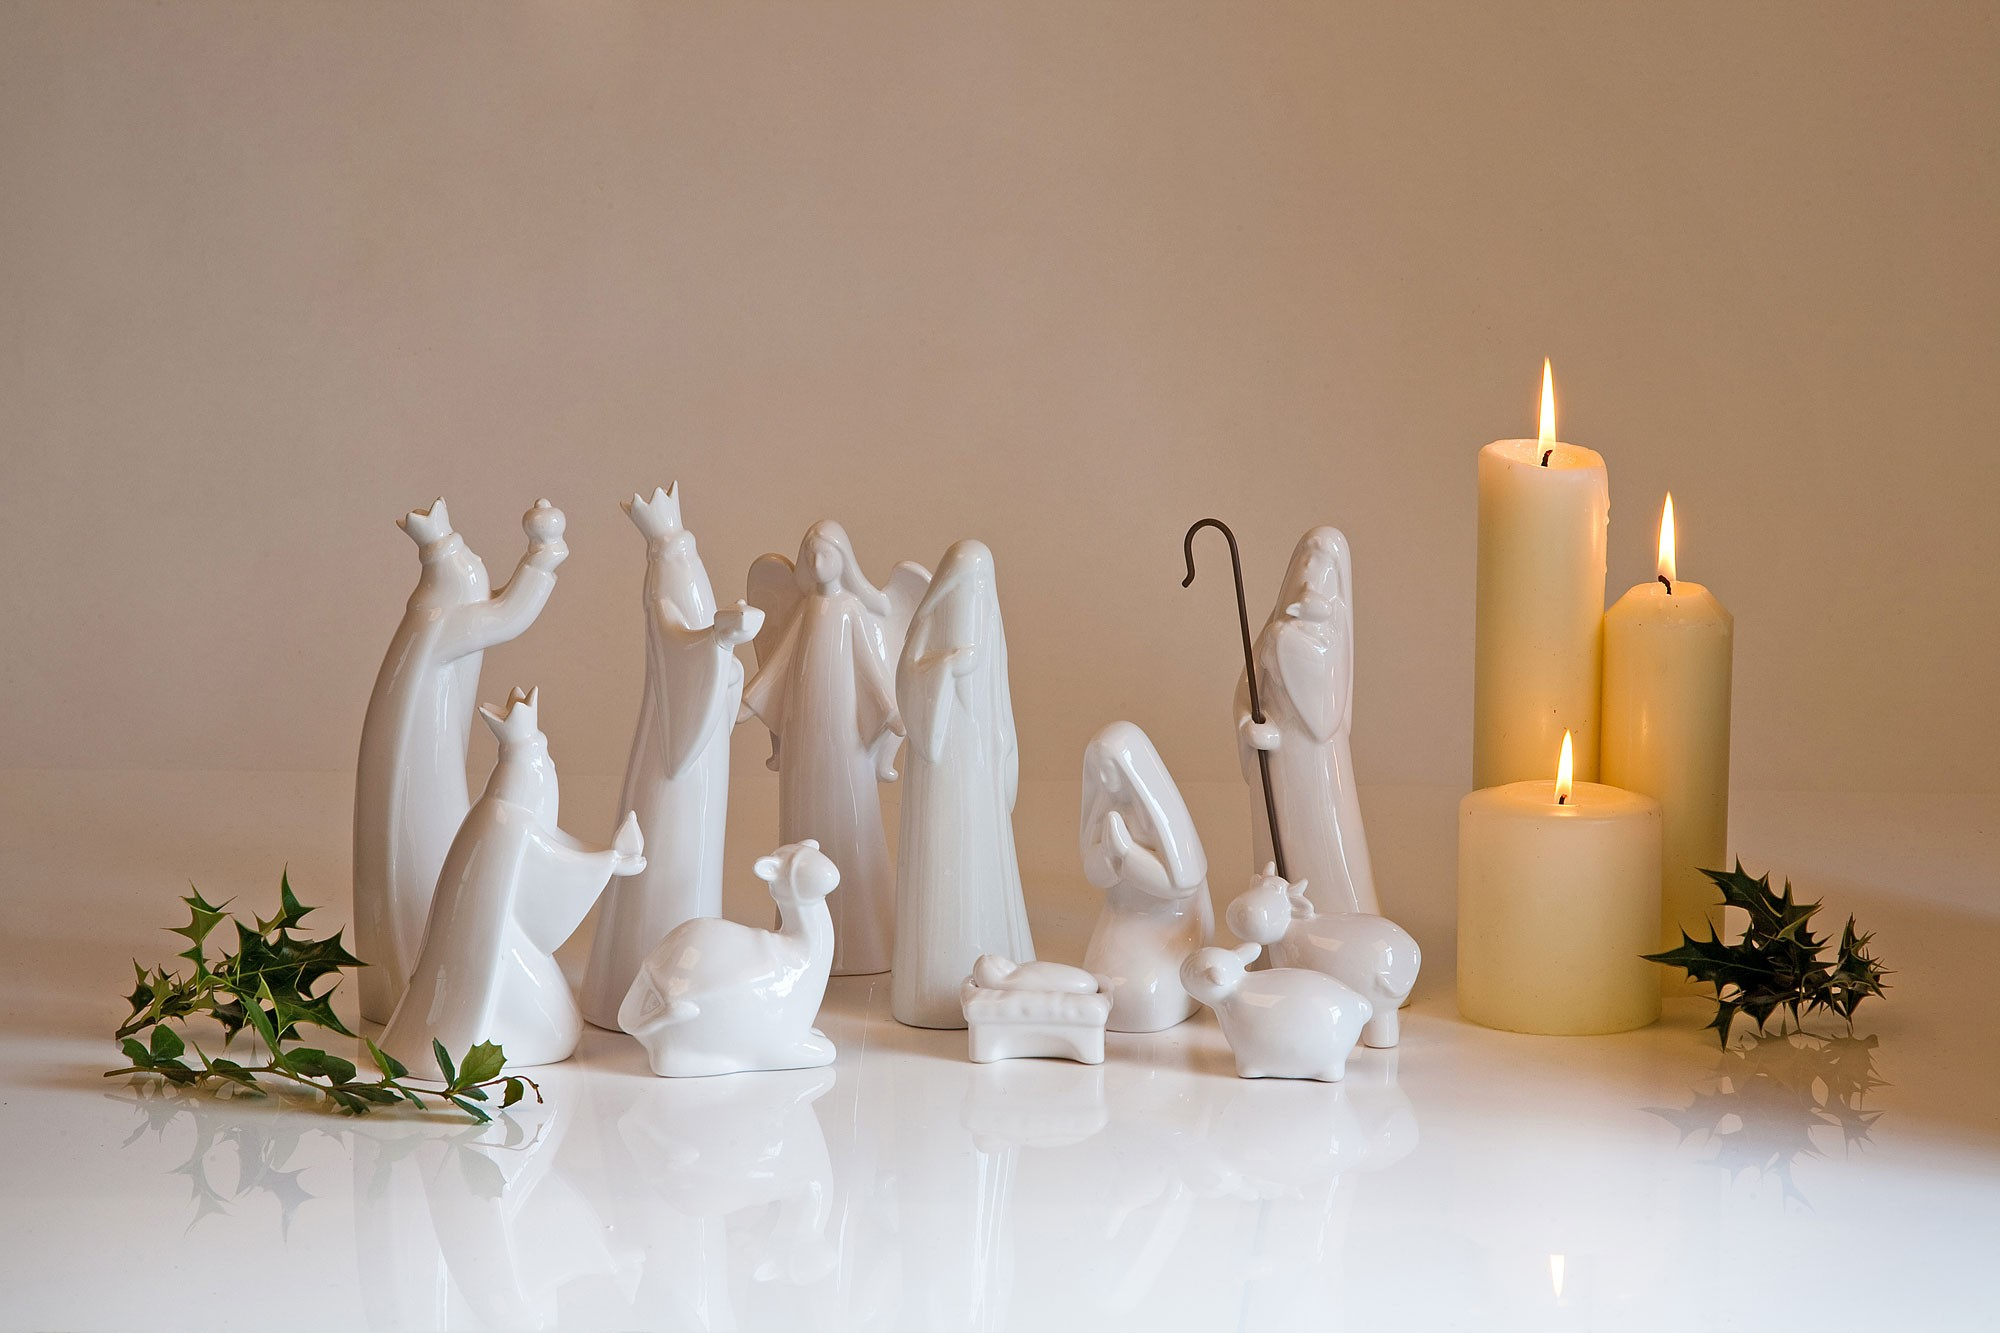 chic nativity sets made of white ceramic for christmas decoration ideas